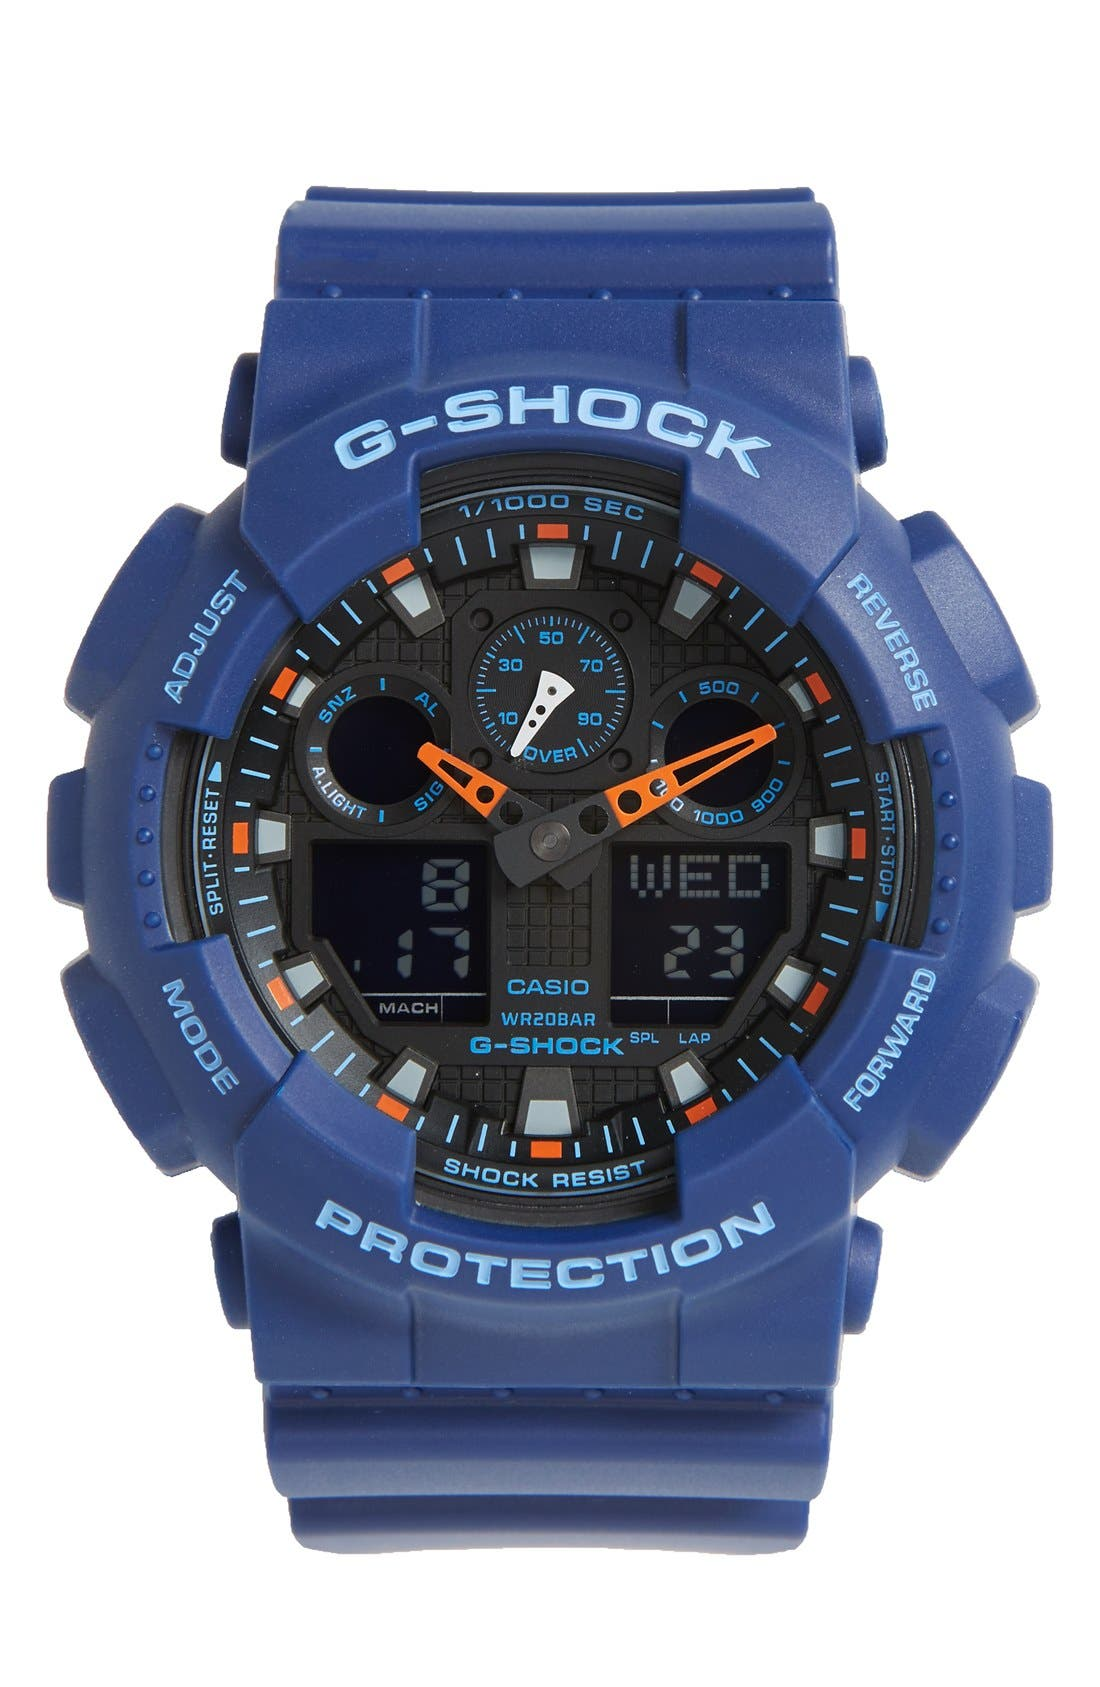 G-SHOCK BABY-G G-Shock Big Combi Watch, 55mm x 51mm